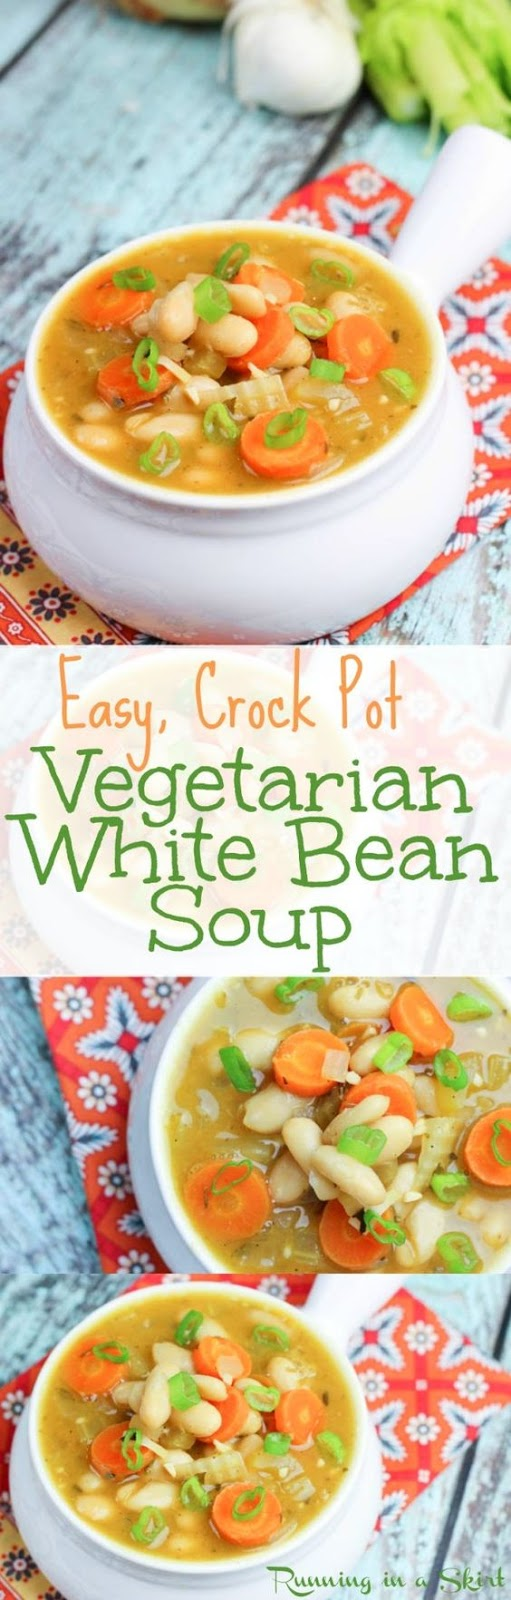 My Vegetarian White Bean Soup simmers all day in the Crock Pot. The result is a simple, healthy and delicious meal for any day of the week.